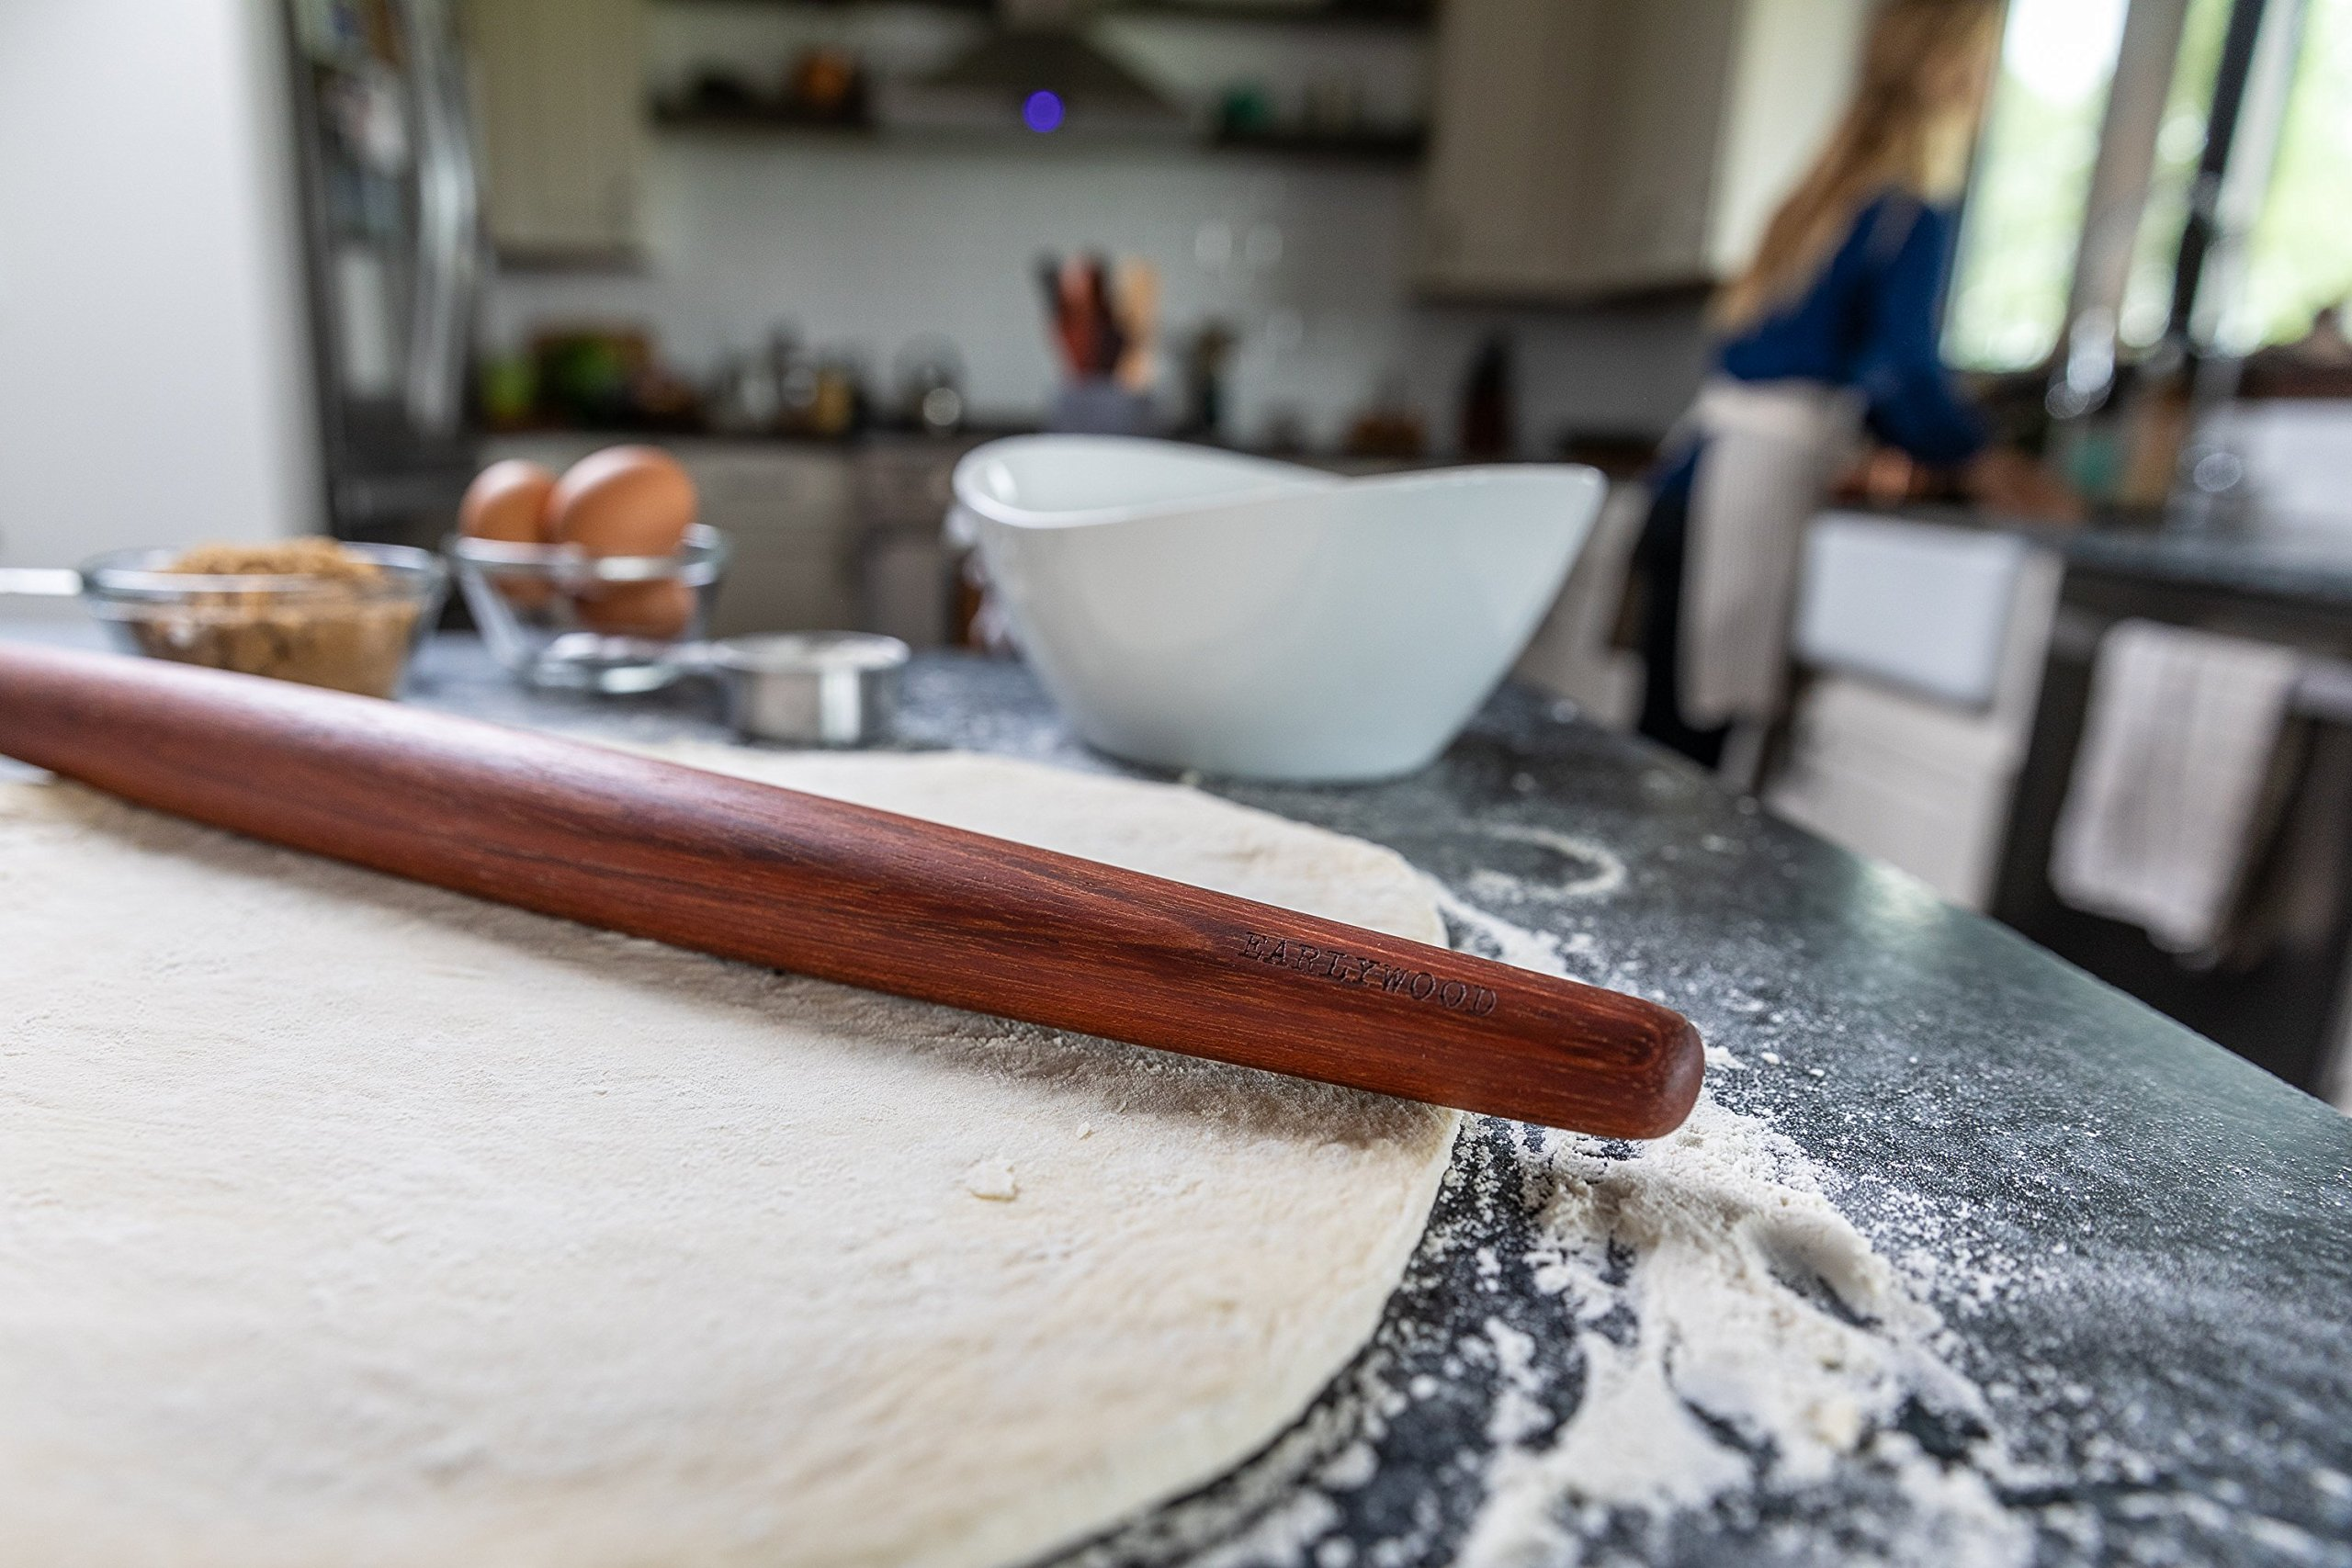 Earlywood French Rolling Pin - Tapered Wooden Rolling Pin for Baking Pizza, Pastry Dough or Pasta - Hard Wood Roller Baking Pin Made in USA, By Earlywood -Jatoba, Maple, Mexican Ebony,Multicolor by Earlywood (Image #7)